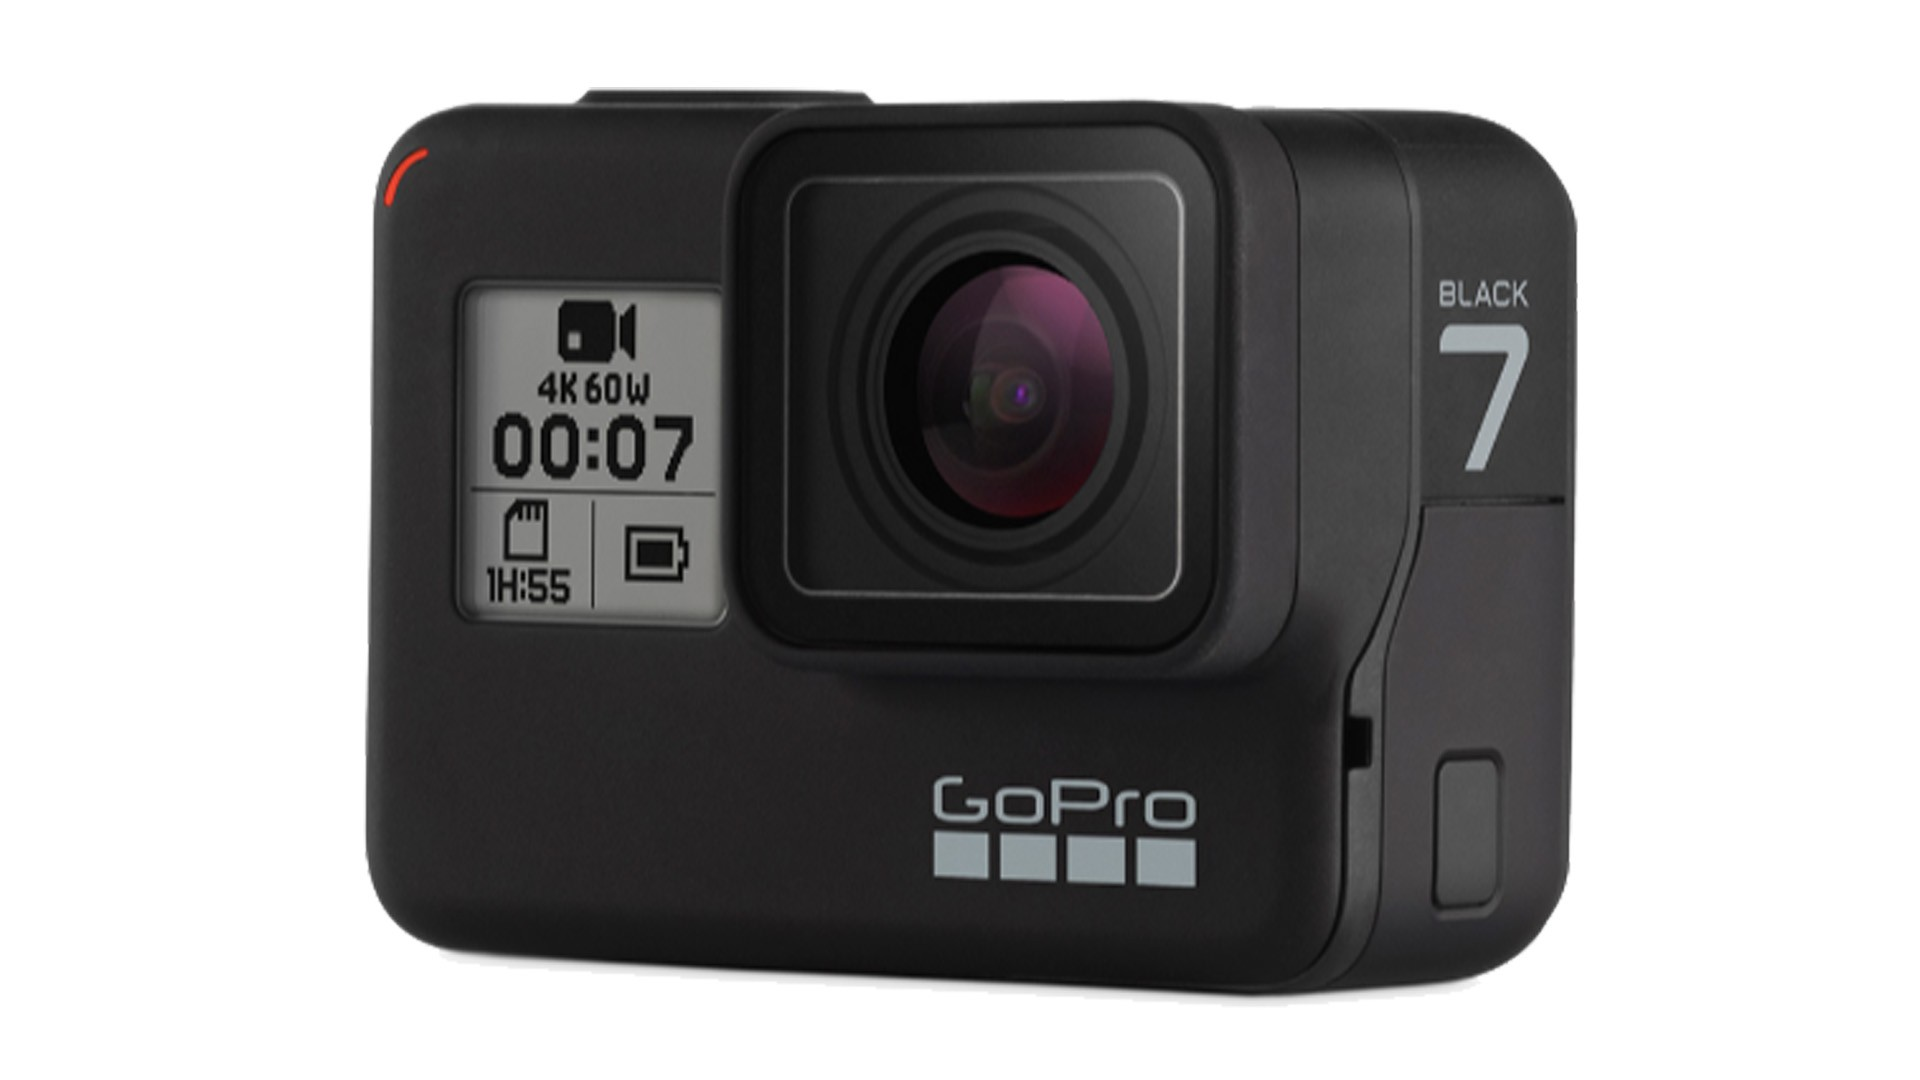 The action camera: all-important for those vlogs and edits